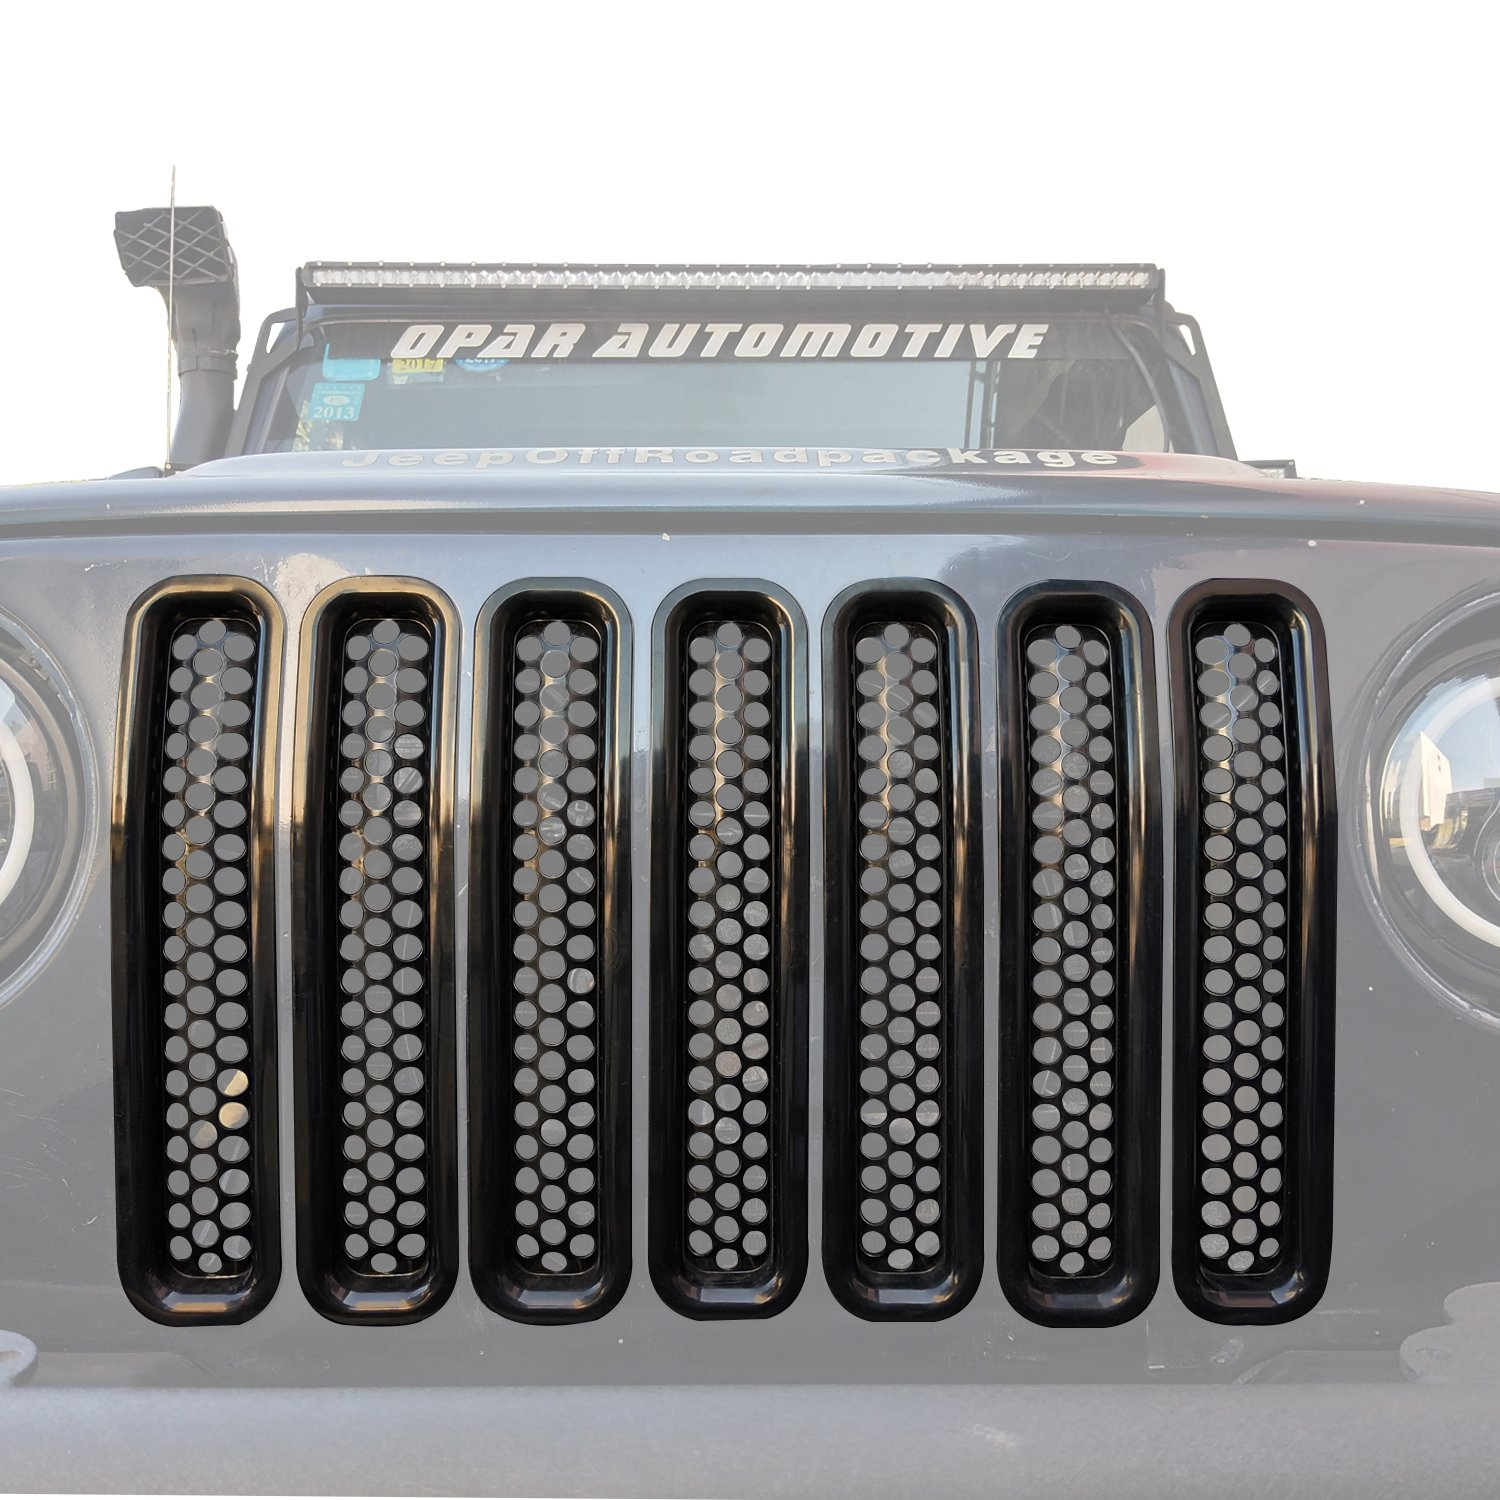 Black Front Grill Mesh Inserts Clip-in Honeycomb Grille Guards for 1997-2006 Jeep Wrangler TJ /& Unlimited Hooke Road Pack of 7